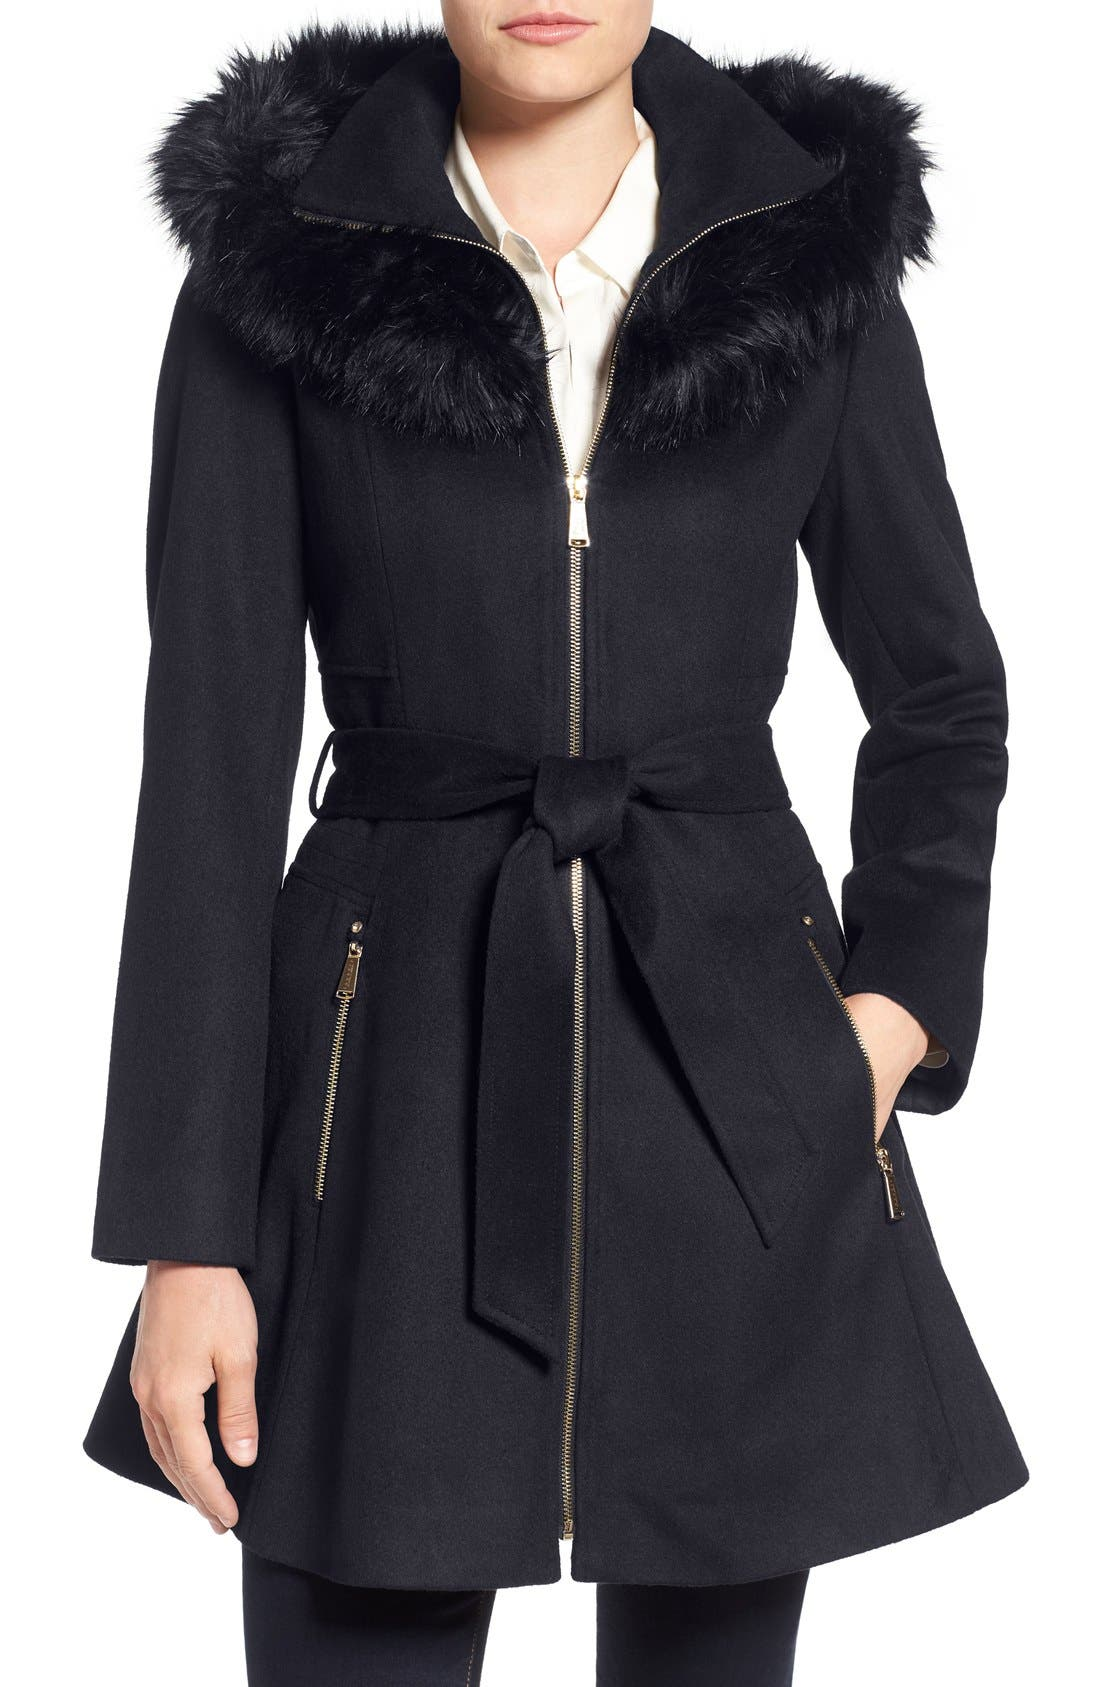 Main Image - Laundry by Shelly Segal Faux Fur Trim Wool Blend Fit & Flare Coat